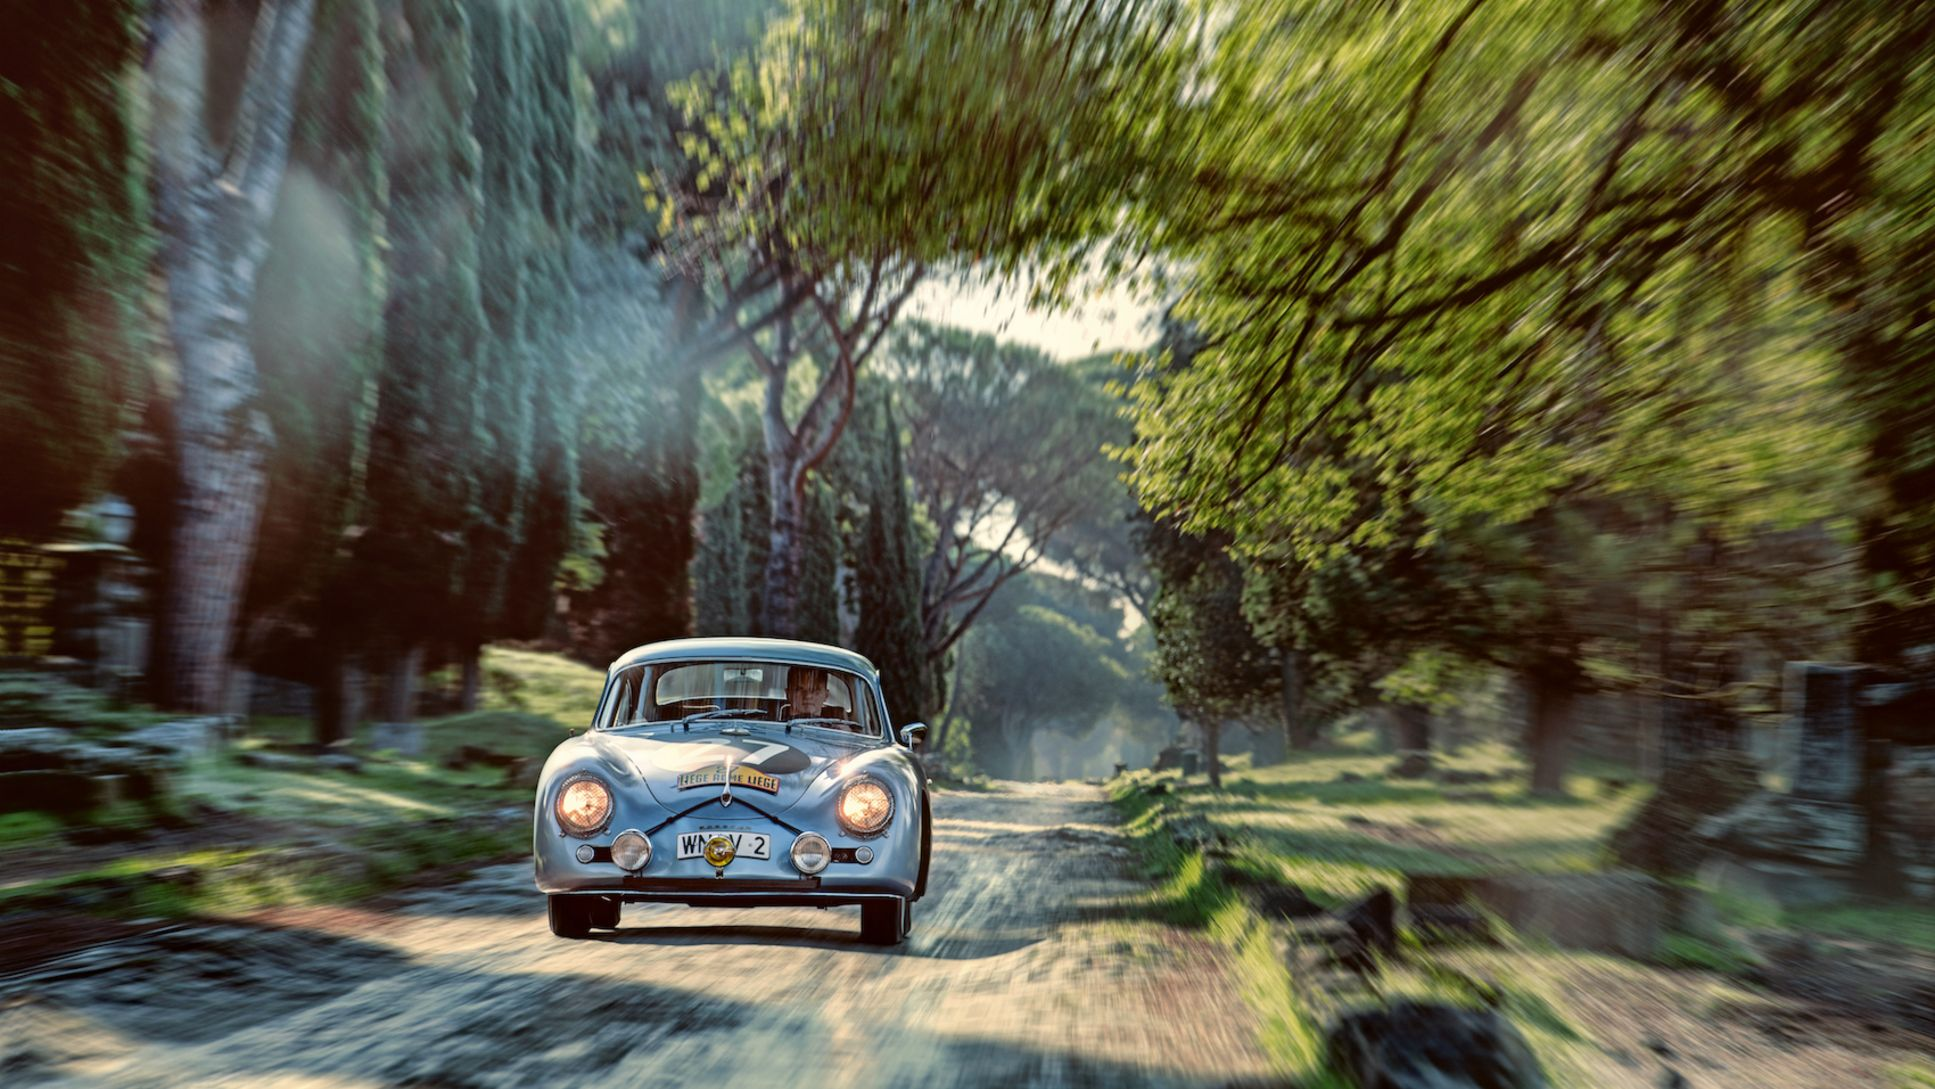 The Porsche 356 on the road to Rome - Image 8